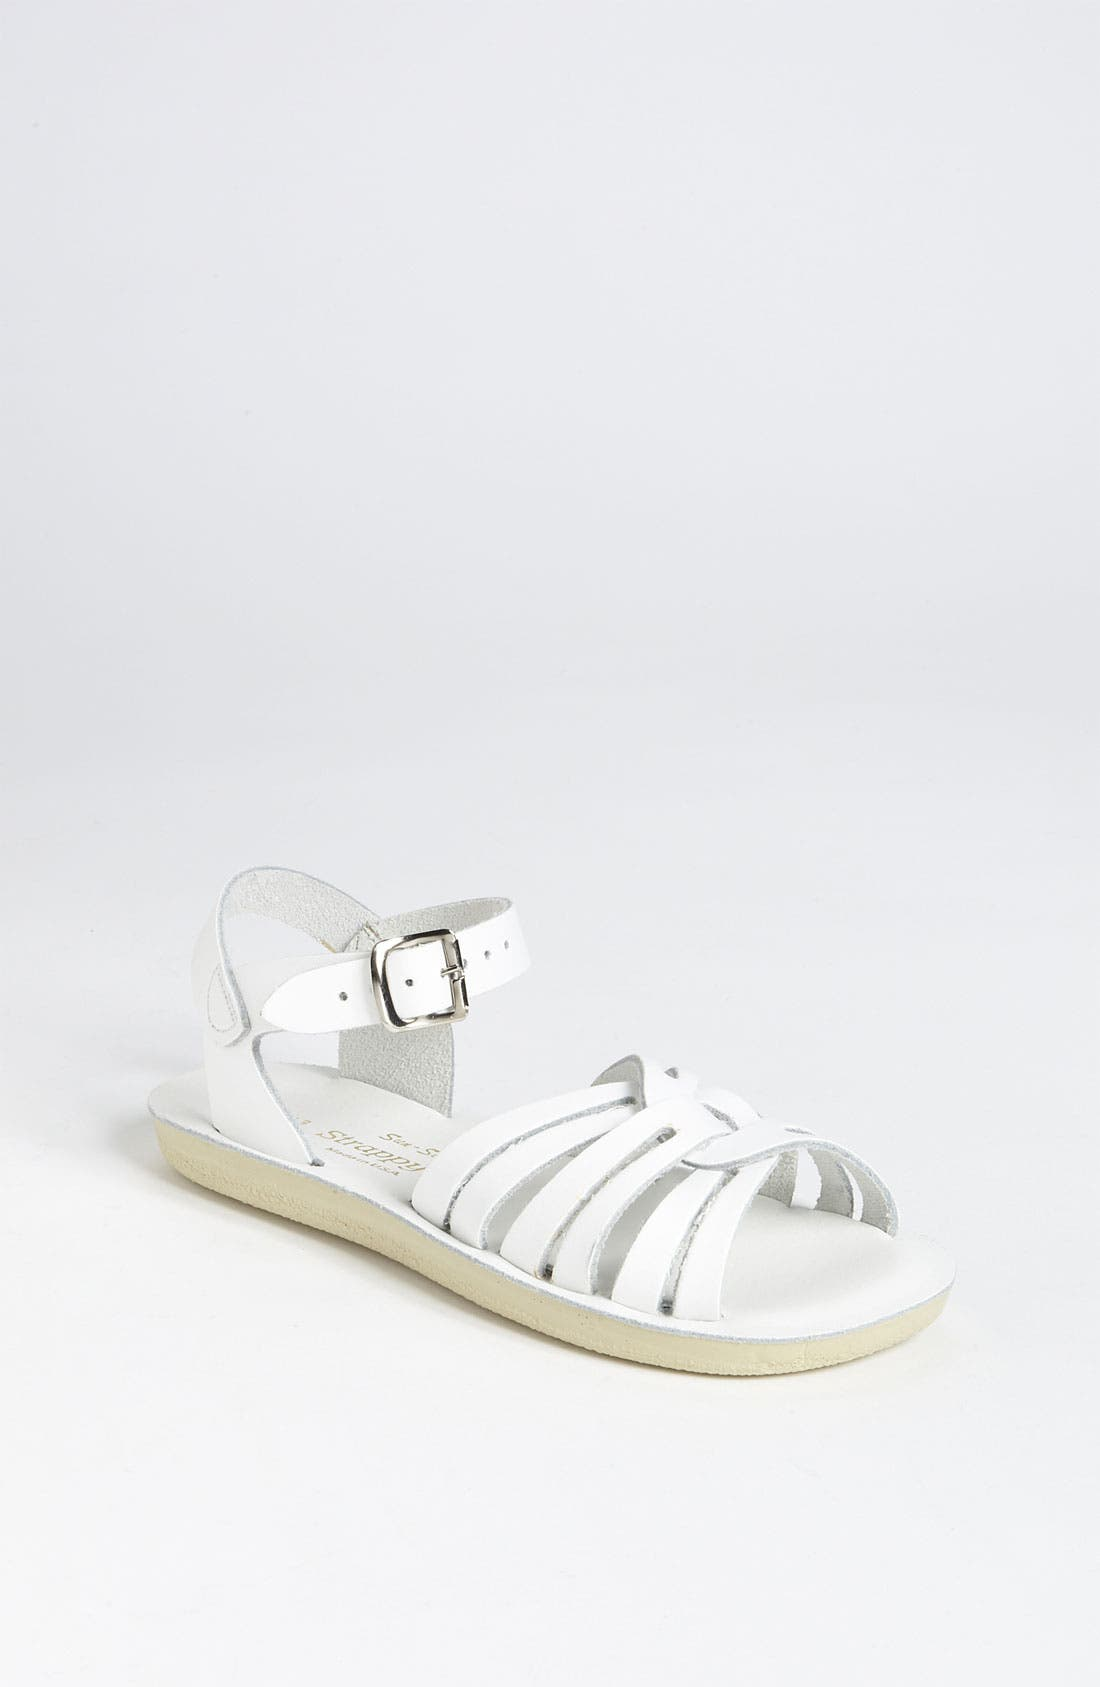 Alternate Image 1 Selected - Salt Water Sandals by Hoy Strappy Sandal (Walker, Toddler & Little Kid)